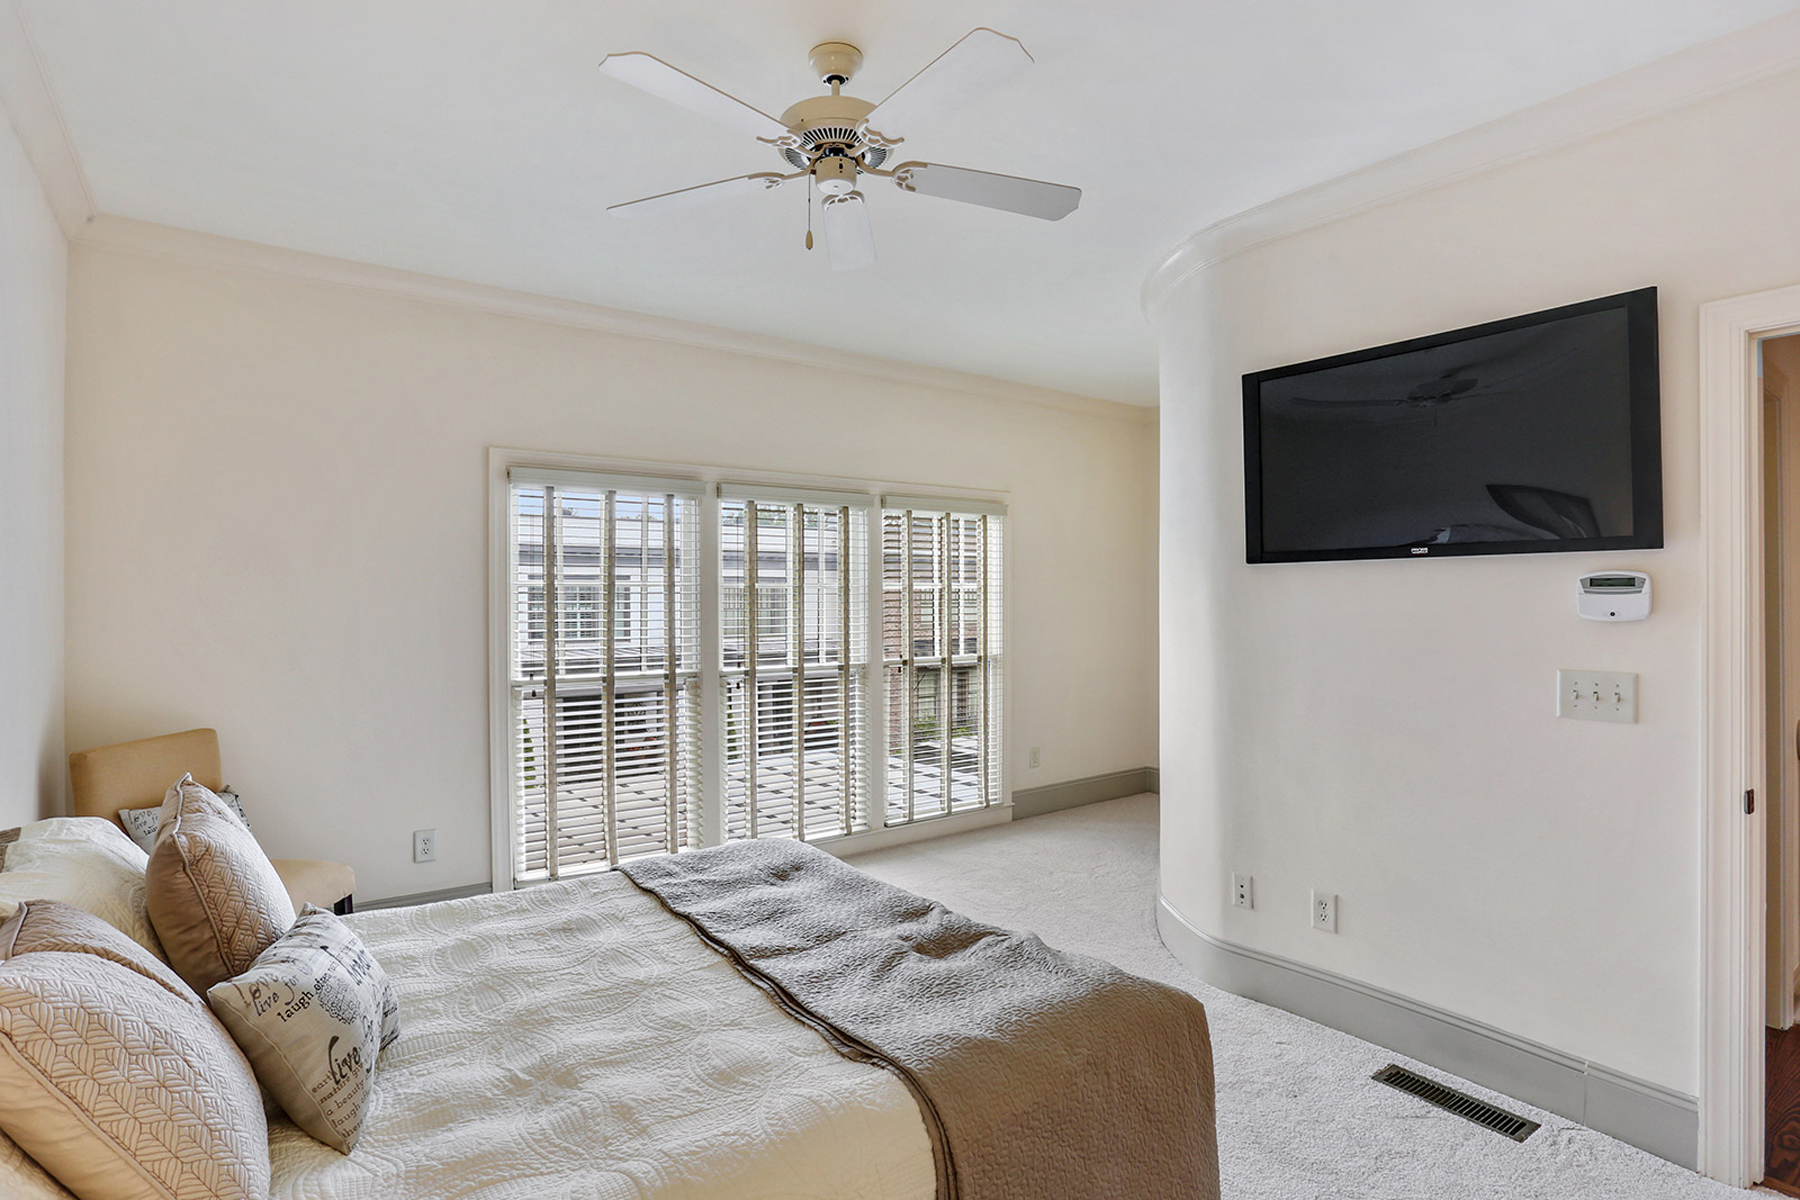 Additional photo for property listing at Beautiful Townhome Overlooking Courtyard 5986 Bond Street Cumming, Γεωργια 30040 Ηνωμενεσ Πολιτειεσ